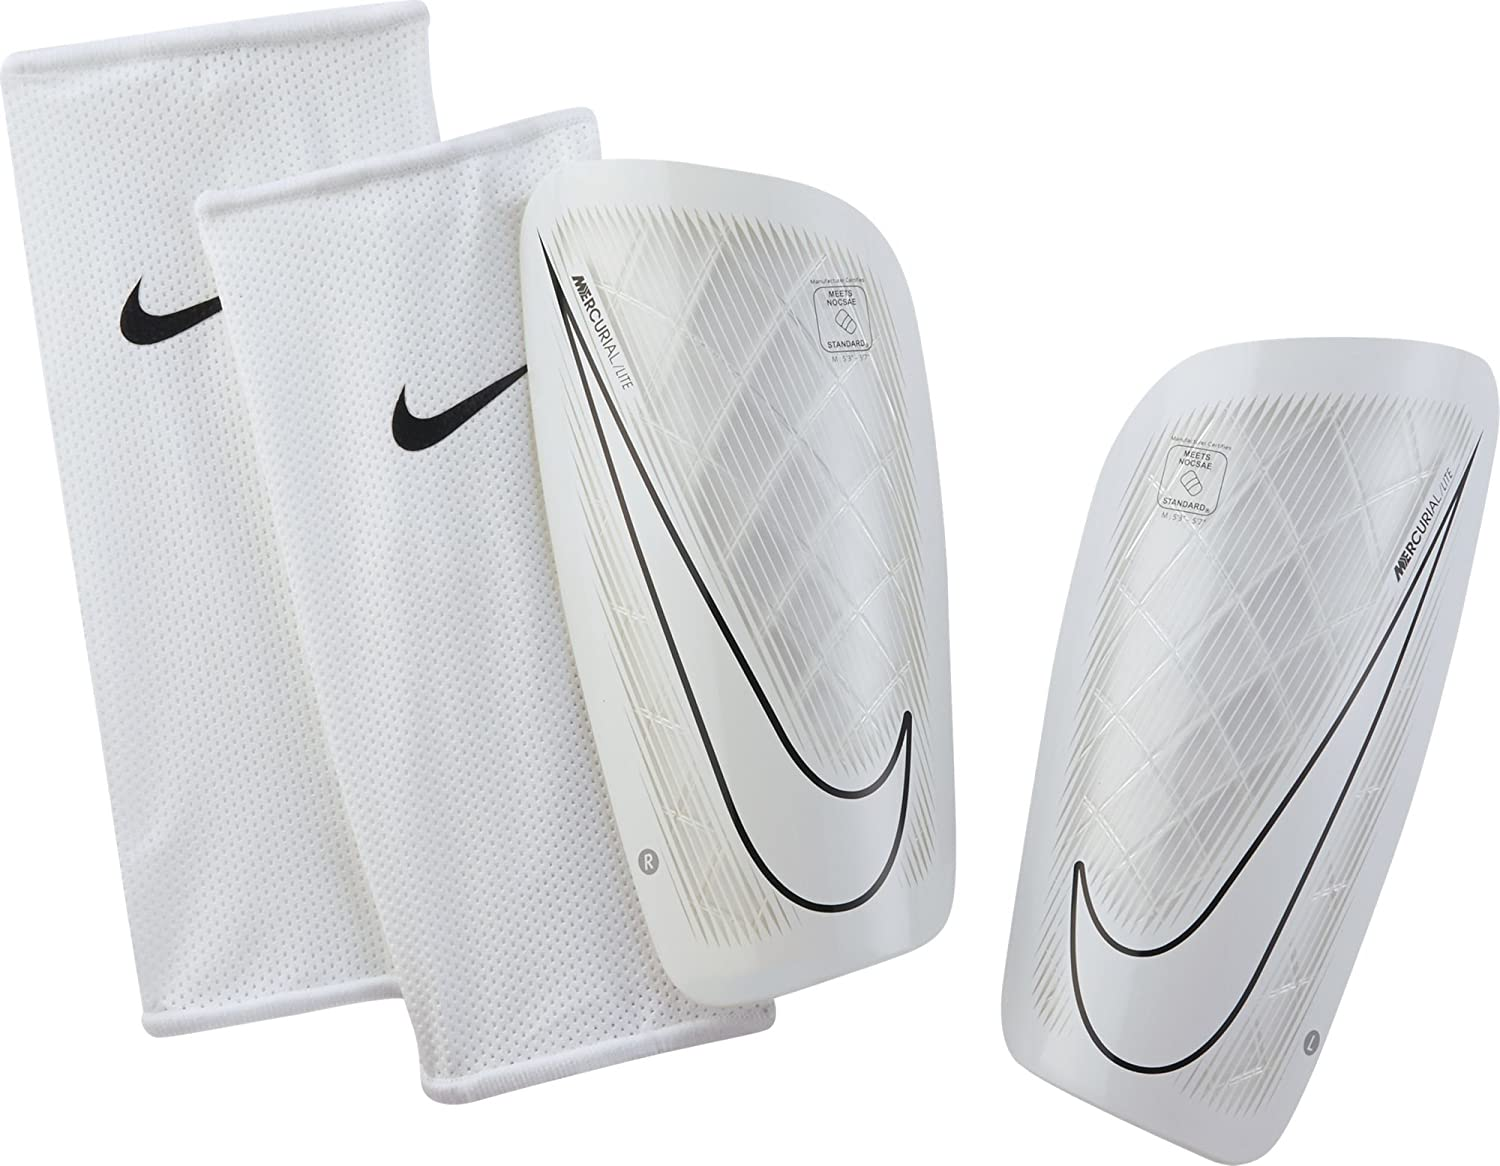 sports shoes 3287c 98094 Amazon.com   Nike Mercurial Lite Shin Guard   Sports Related Merchandise    Sports   Outdoors